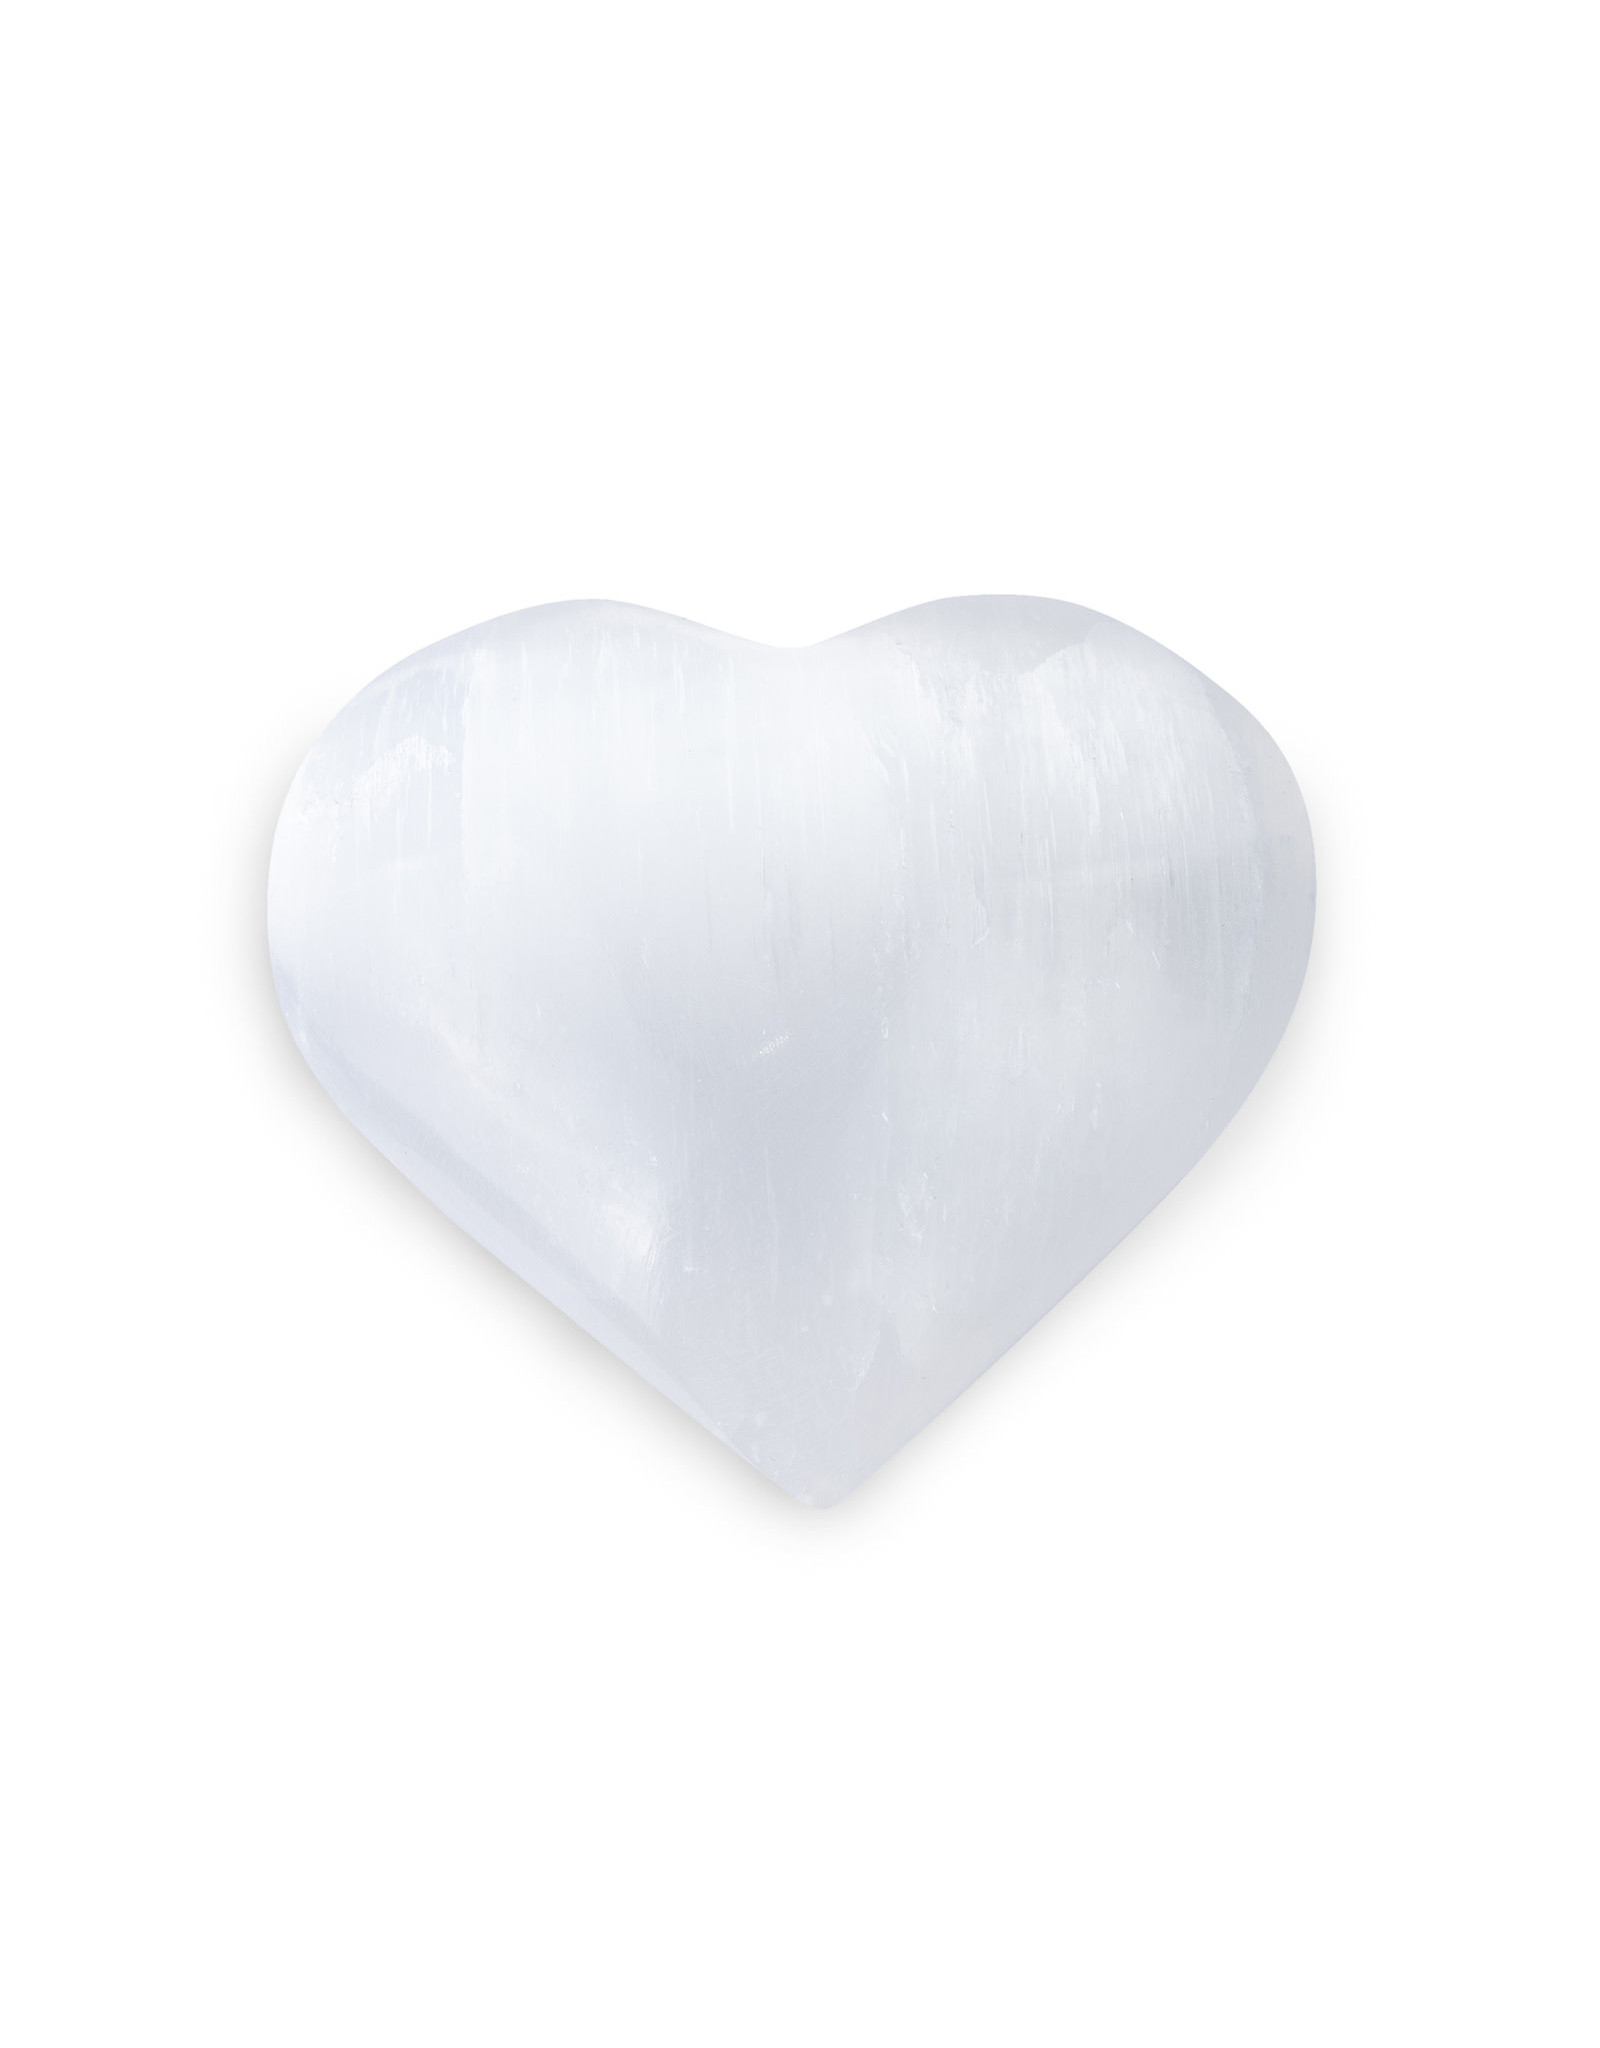 Salt Co Selenite Heart